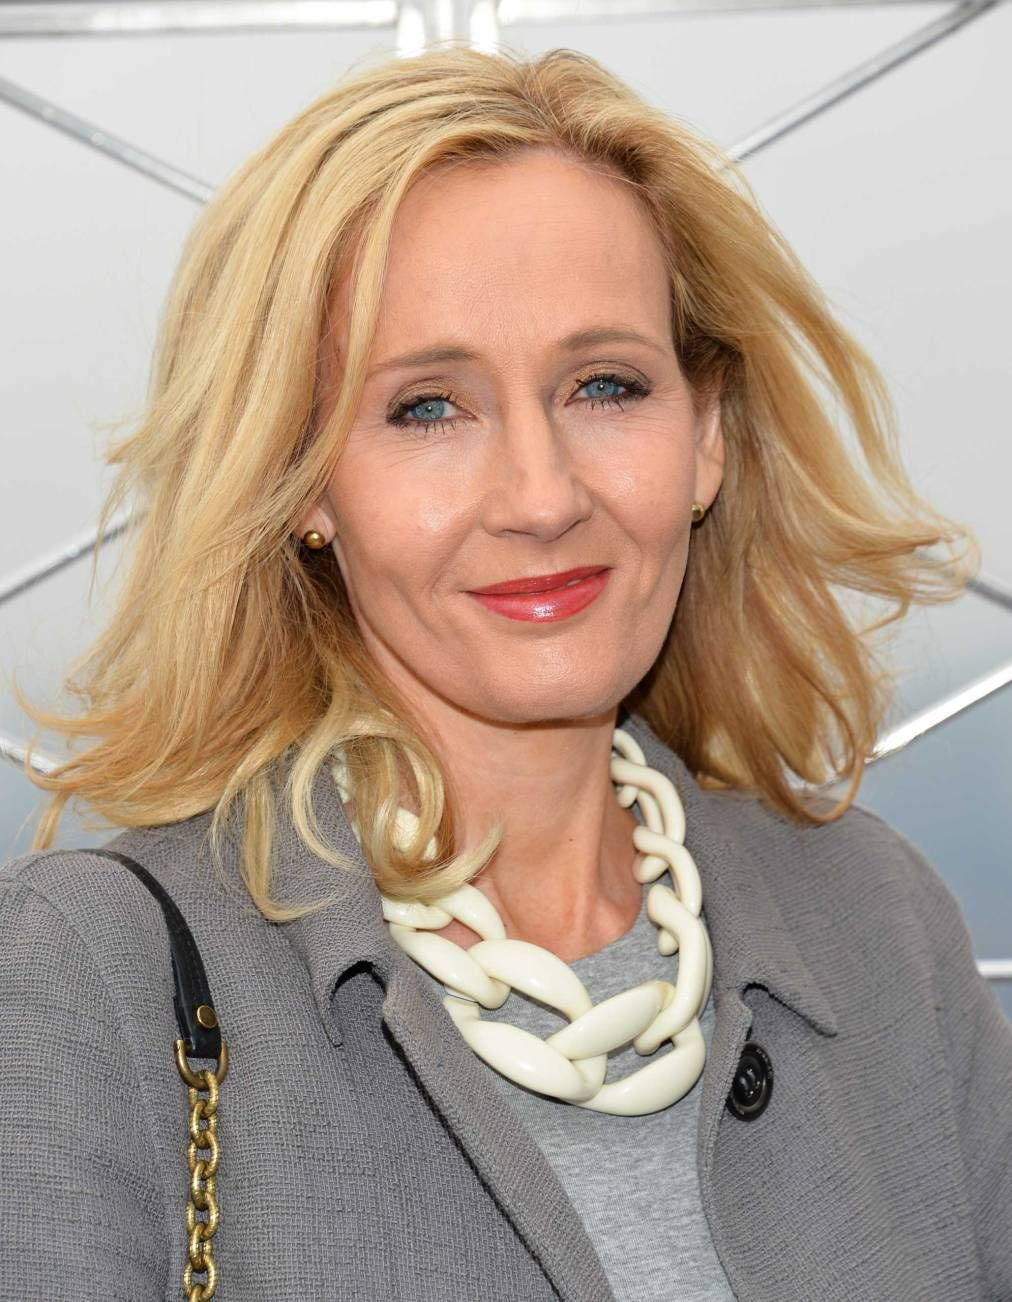 Harry potters birth makes jk rowling cry